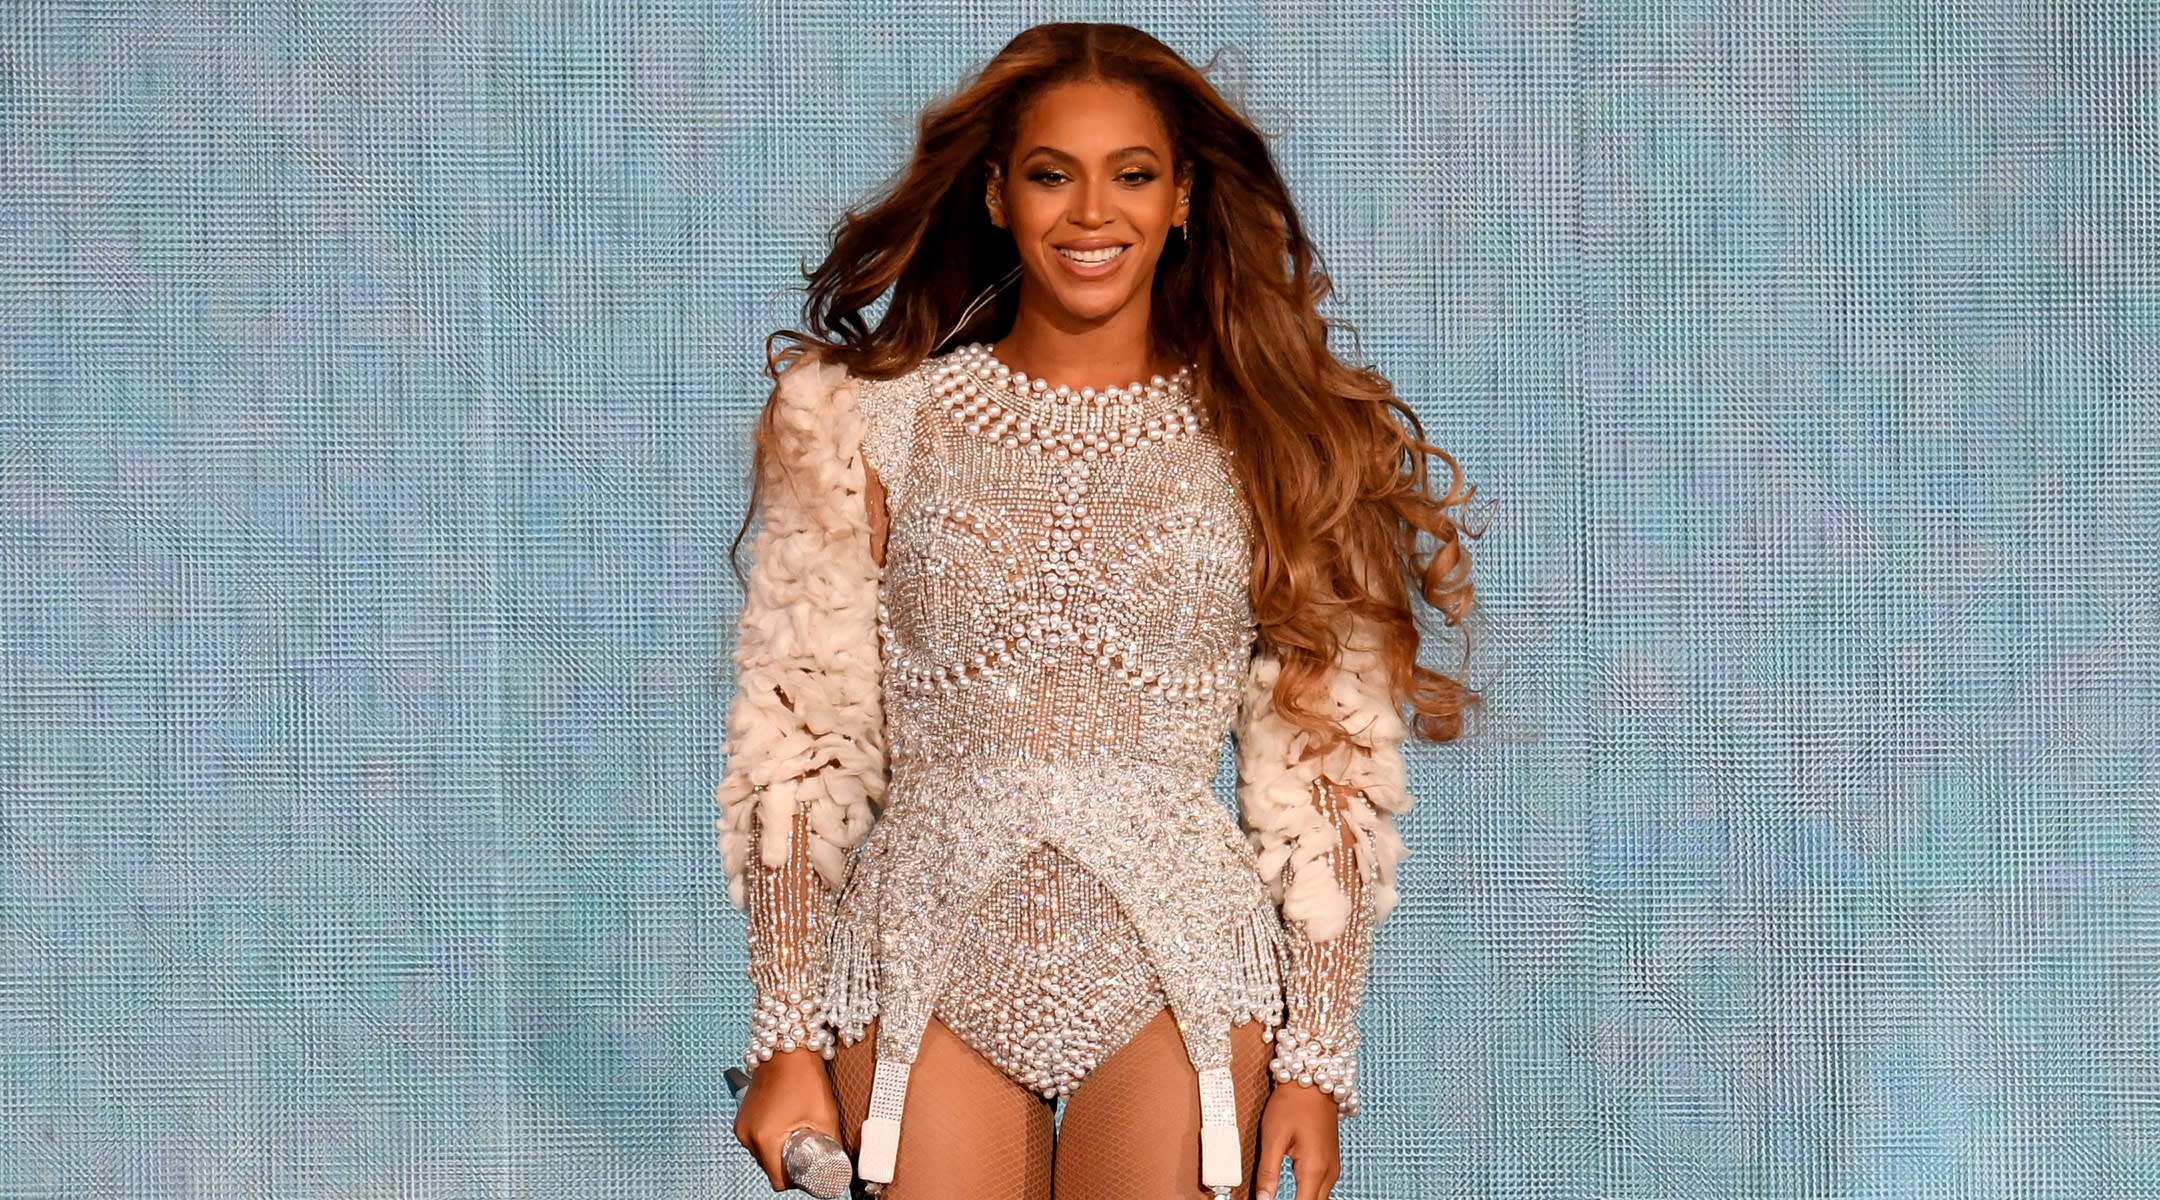 Beyonce Reveals How Miscarriages Changed Her Definition of Success